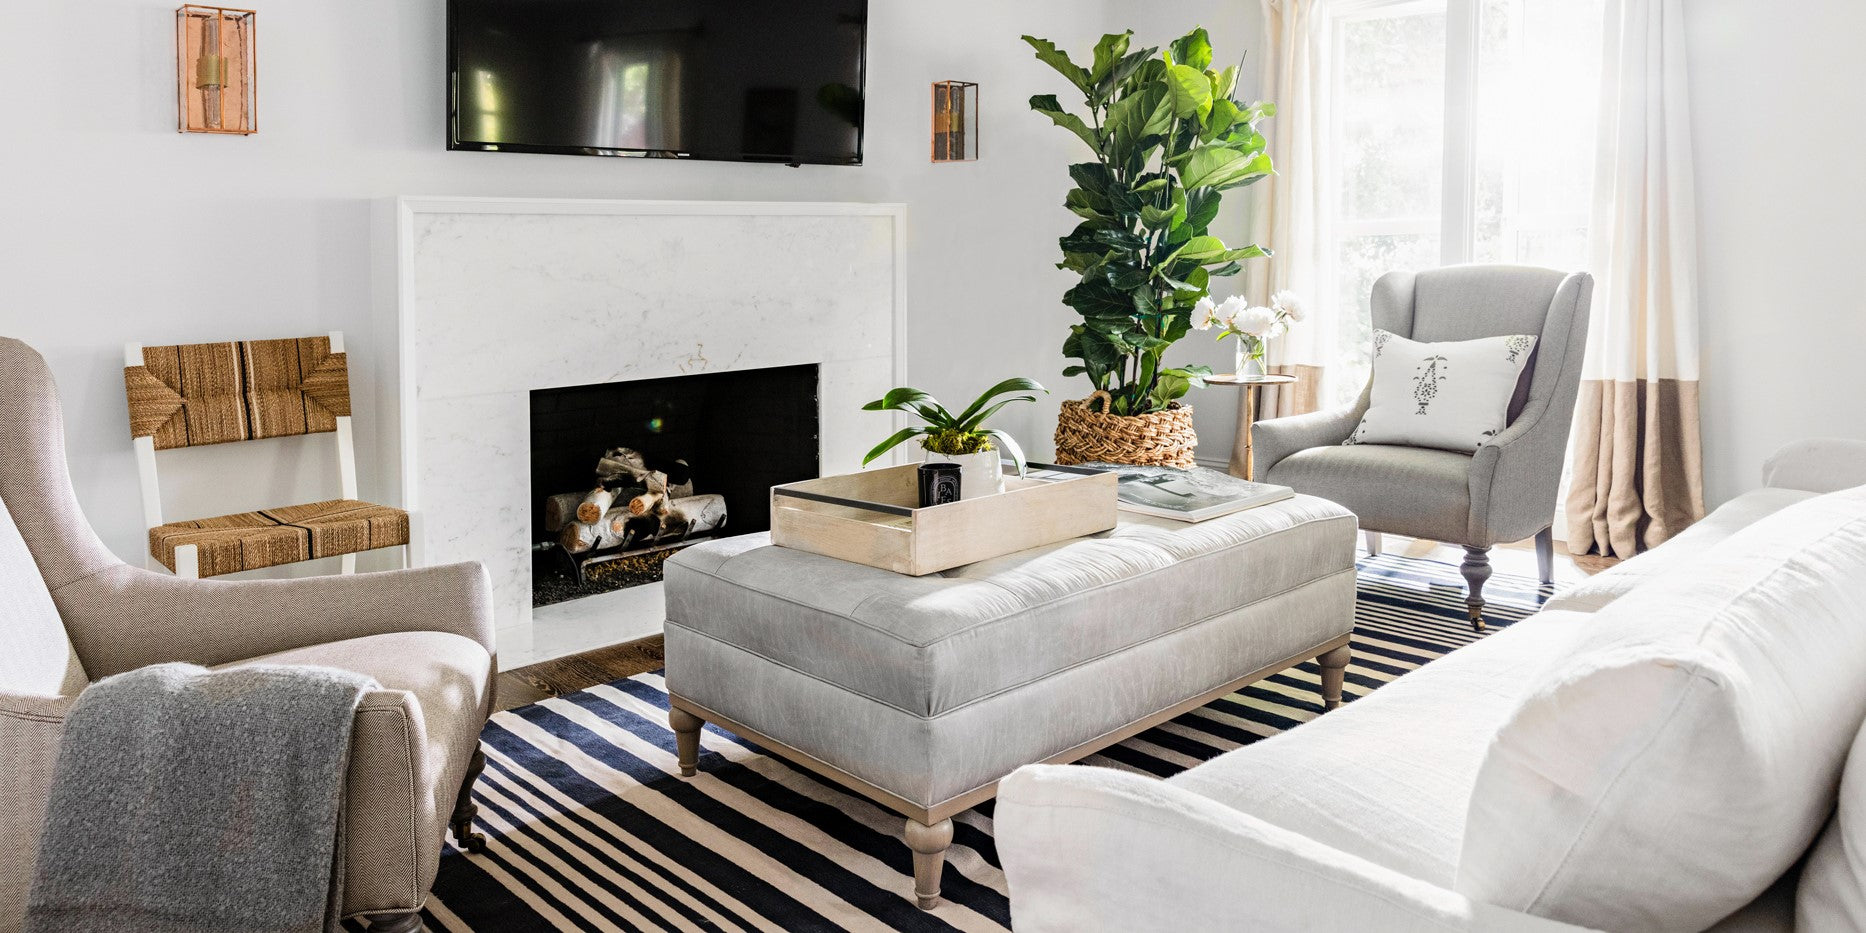 Image of a living room with rearranged furniture